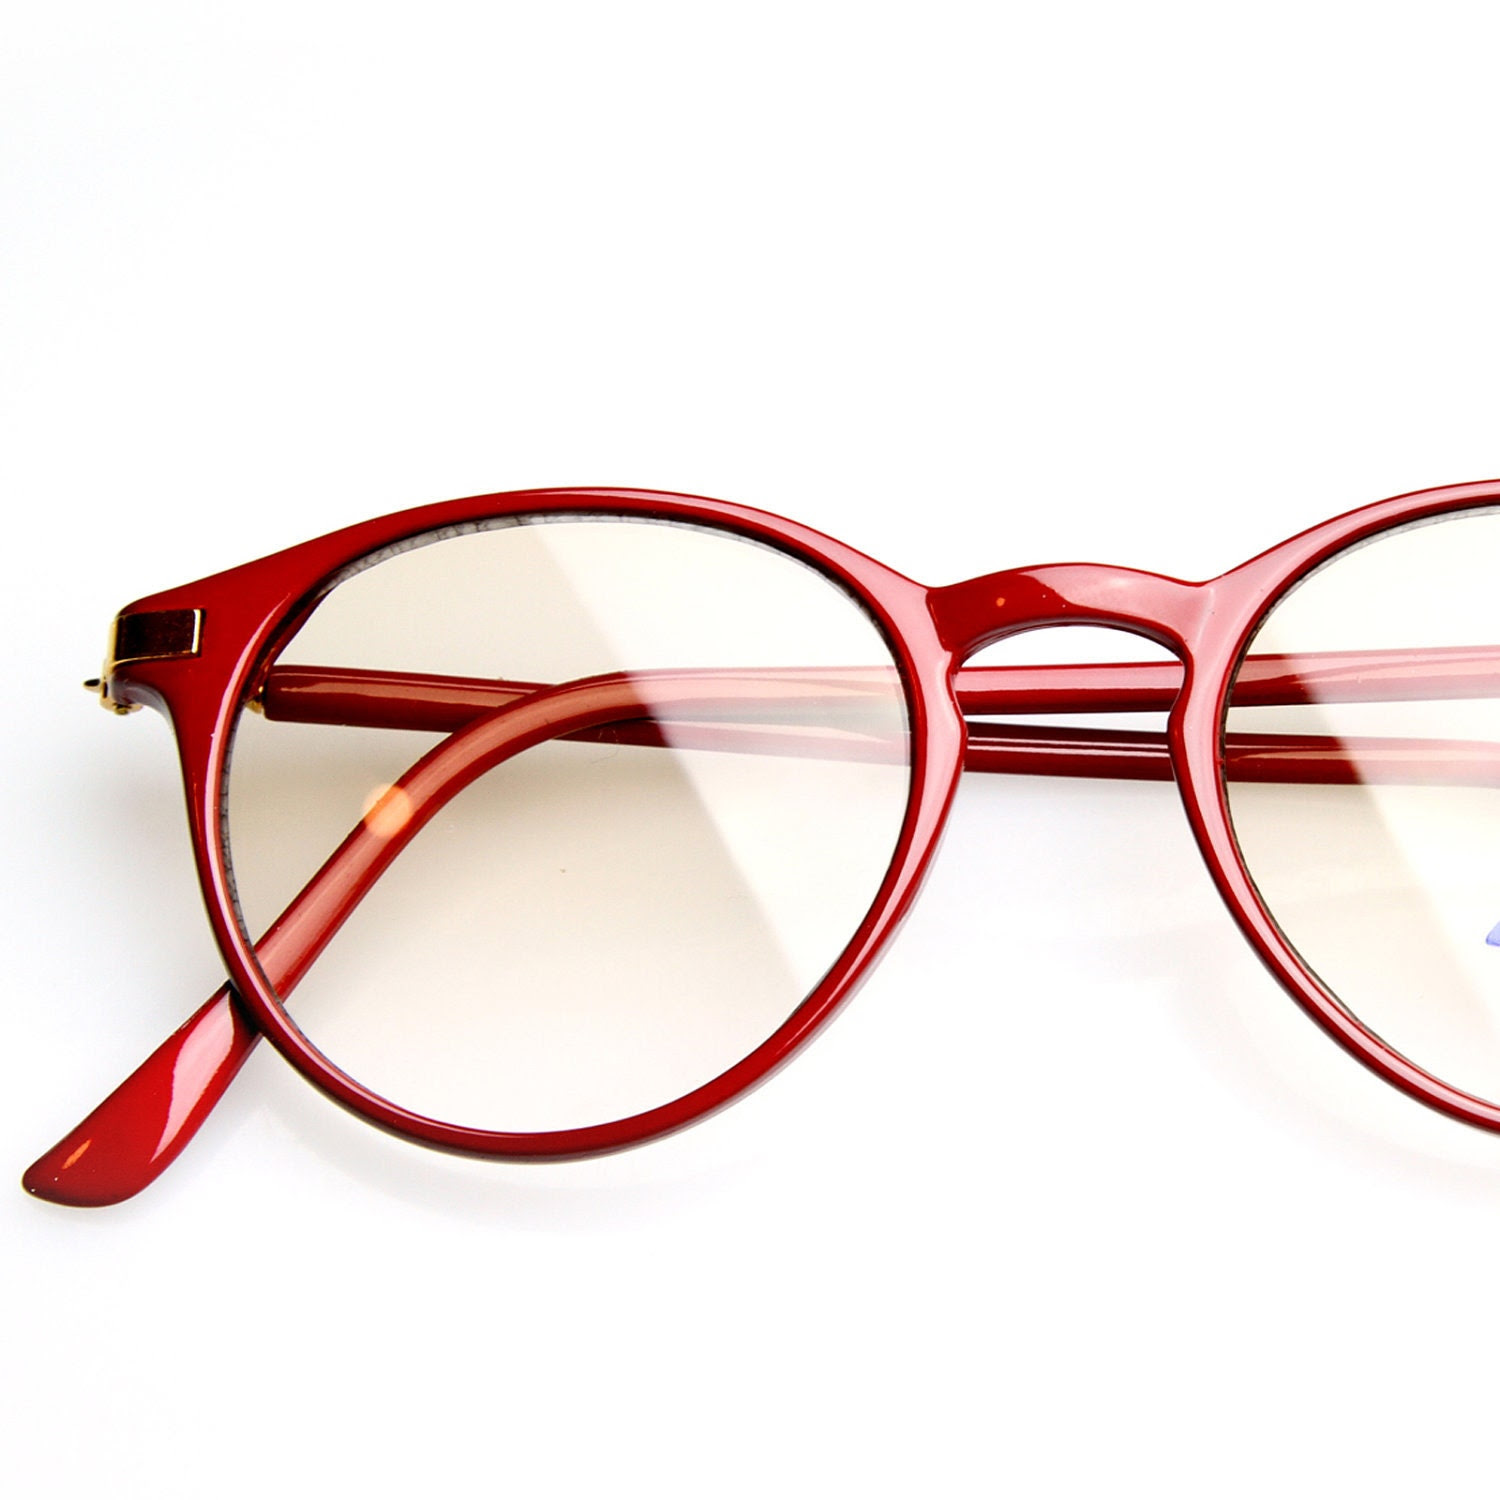 Round Red Slightly Tinted Glasses Small  P-3 Vintage 1980s Spectacles (RED)